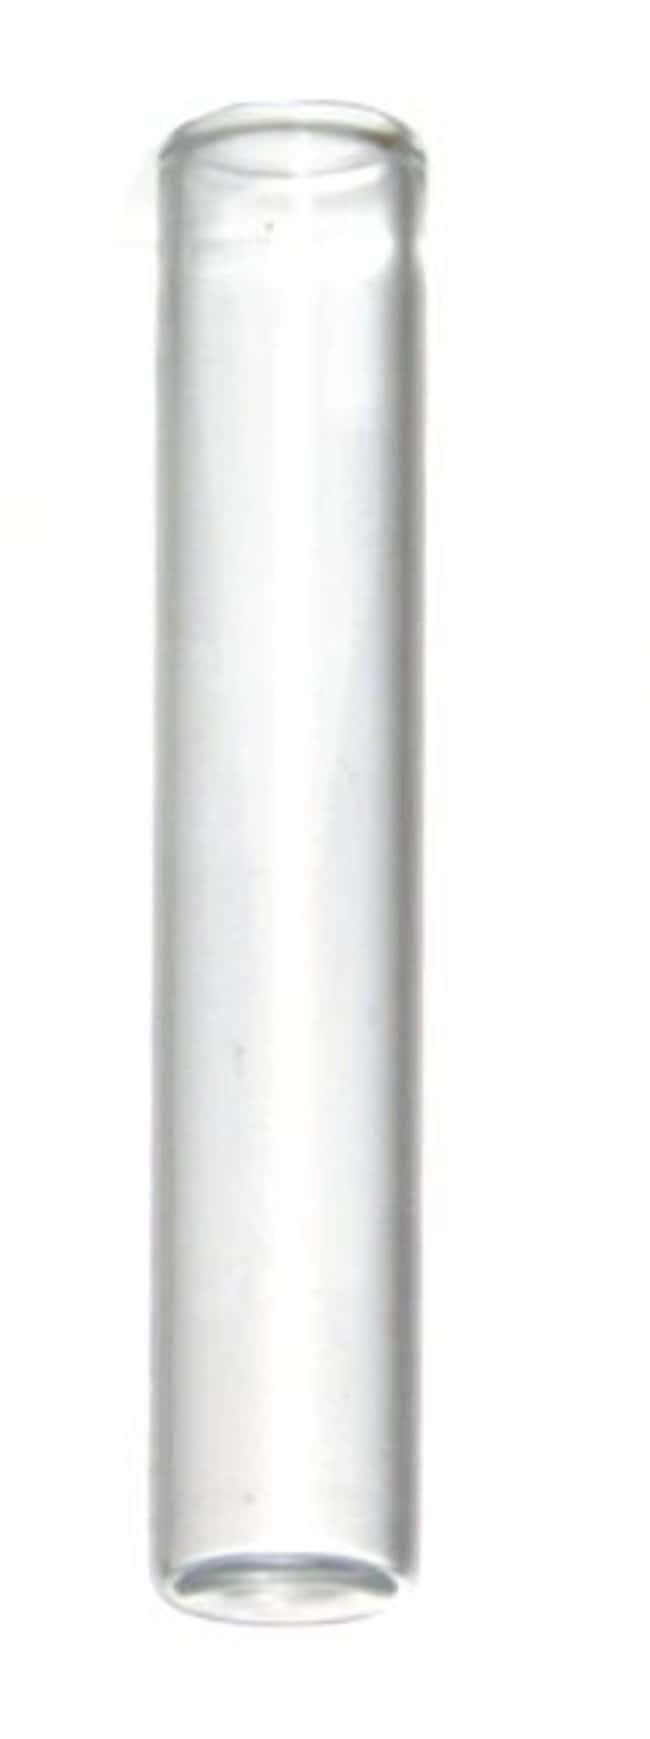 DWK Life Sciences Kimble Limited Volume Vial Insert 400uL Capacity, for